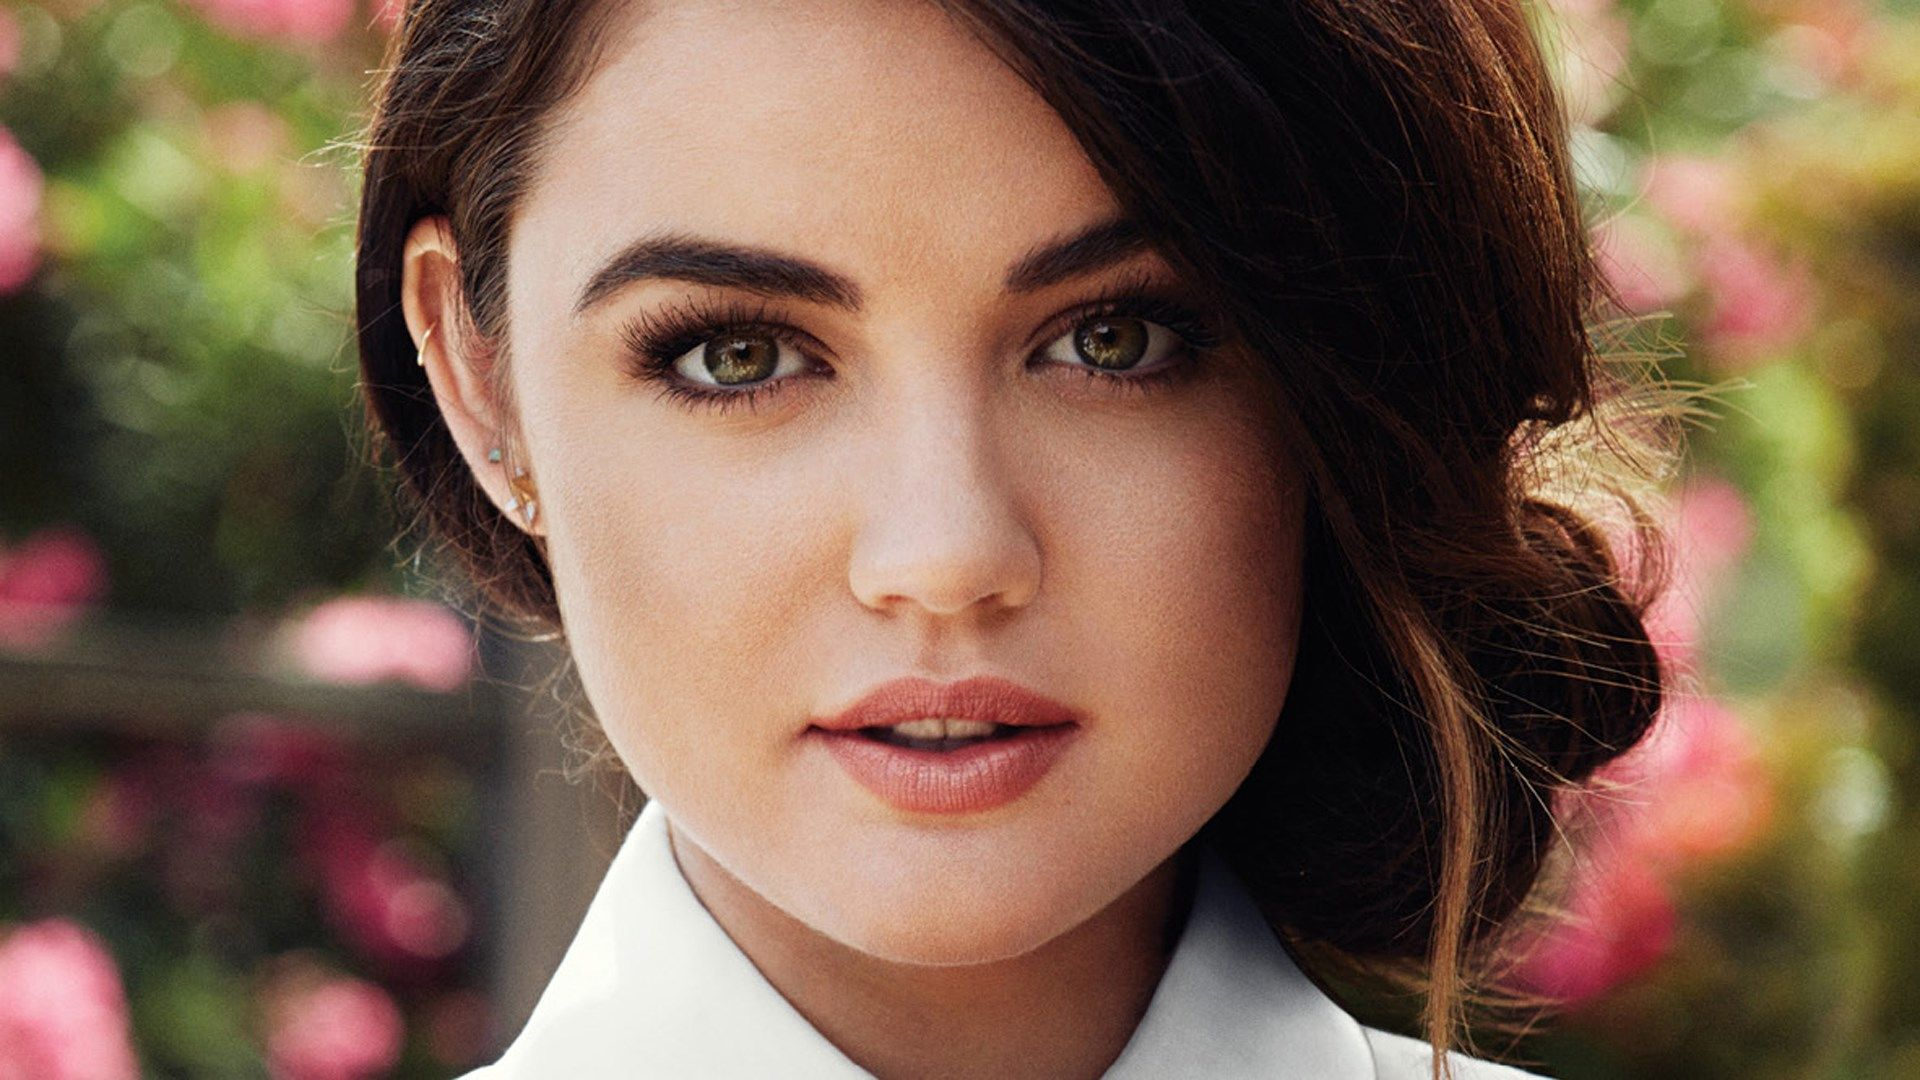 theme hd lucy hale in high res